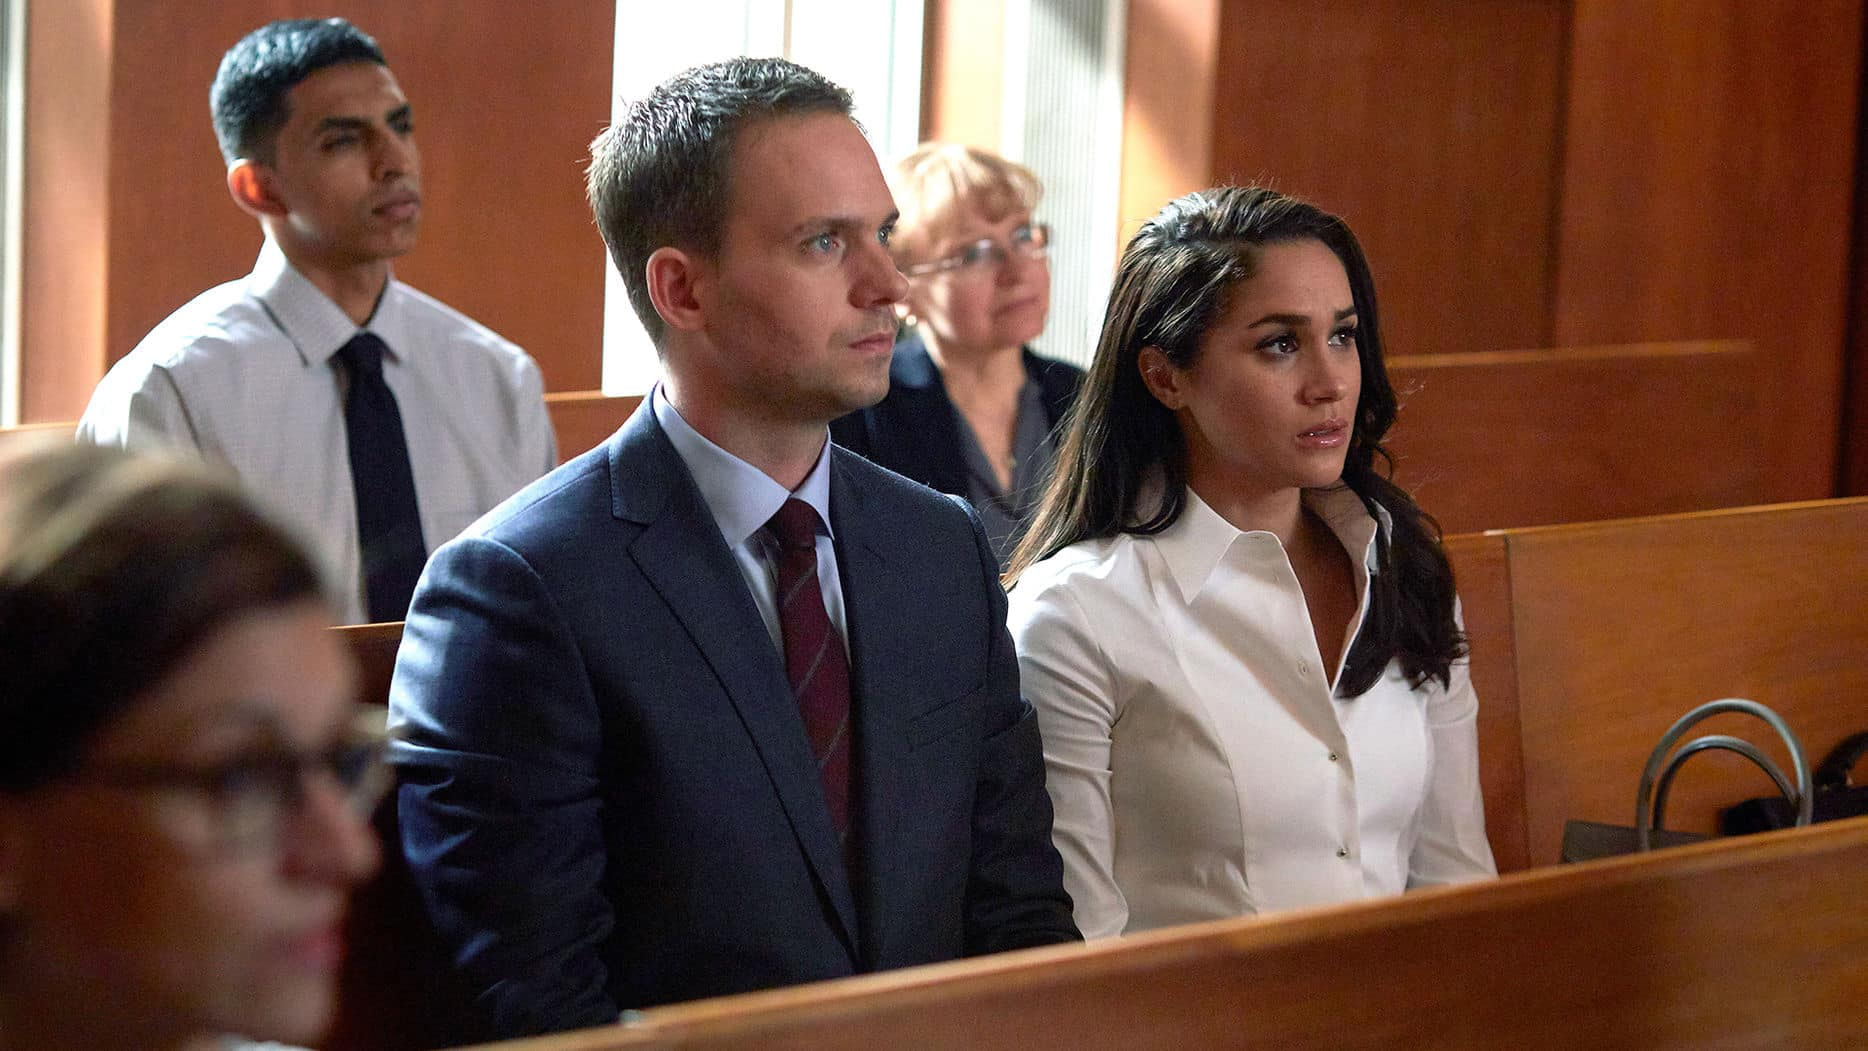 Rachel Zane Mike Ross from Suits